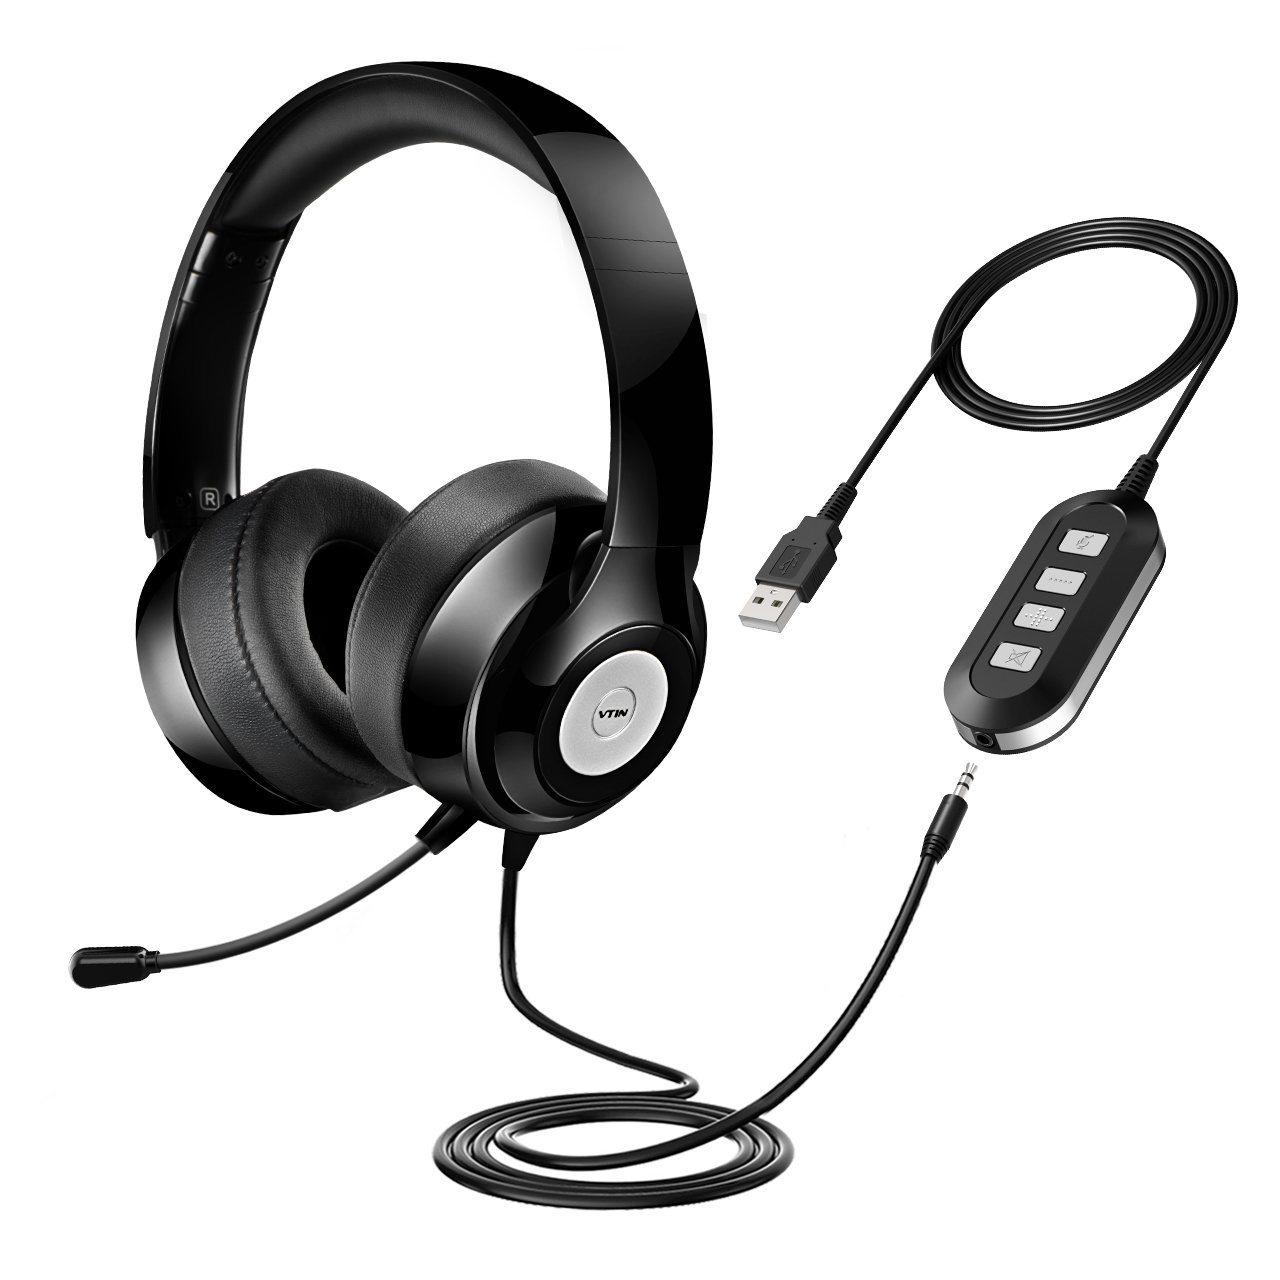 Pick up good headphones for your computer, share advice which brands you prefer. Which ones sound better 41